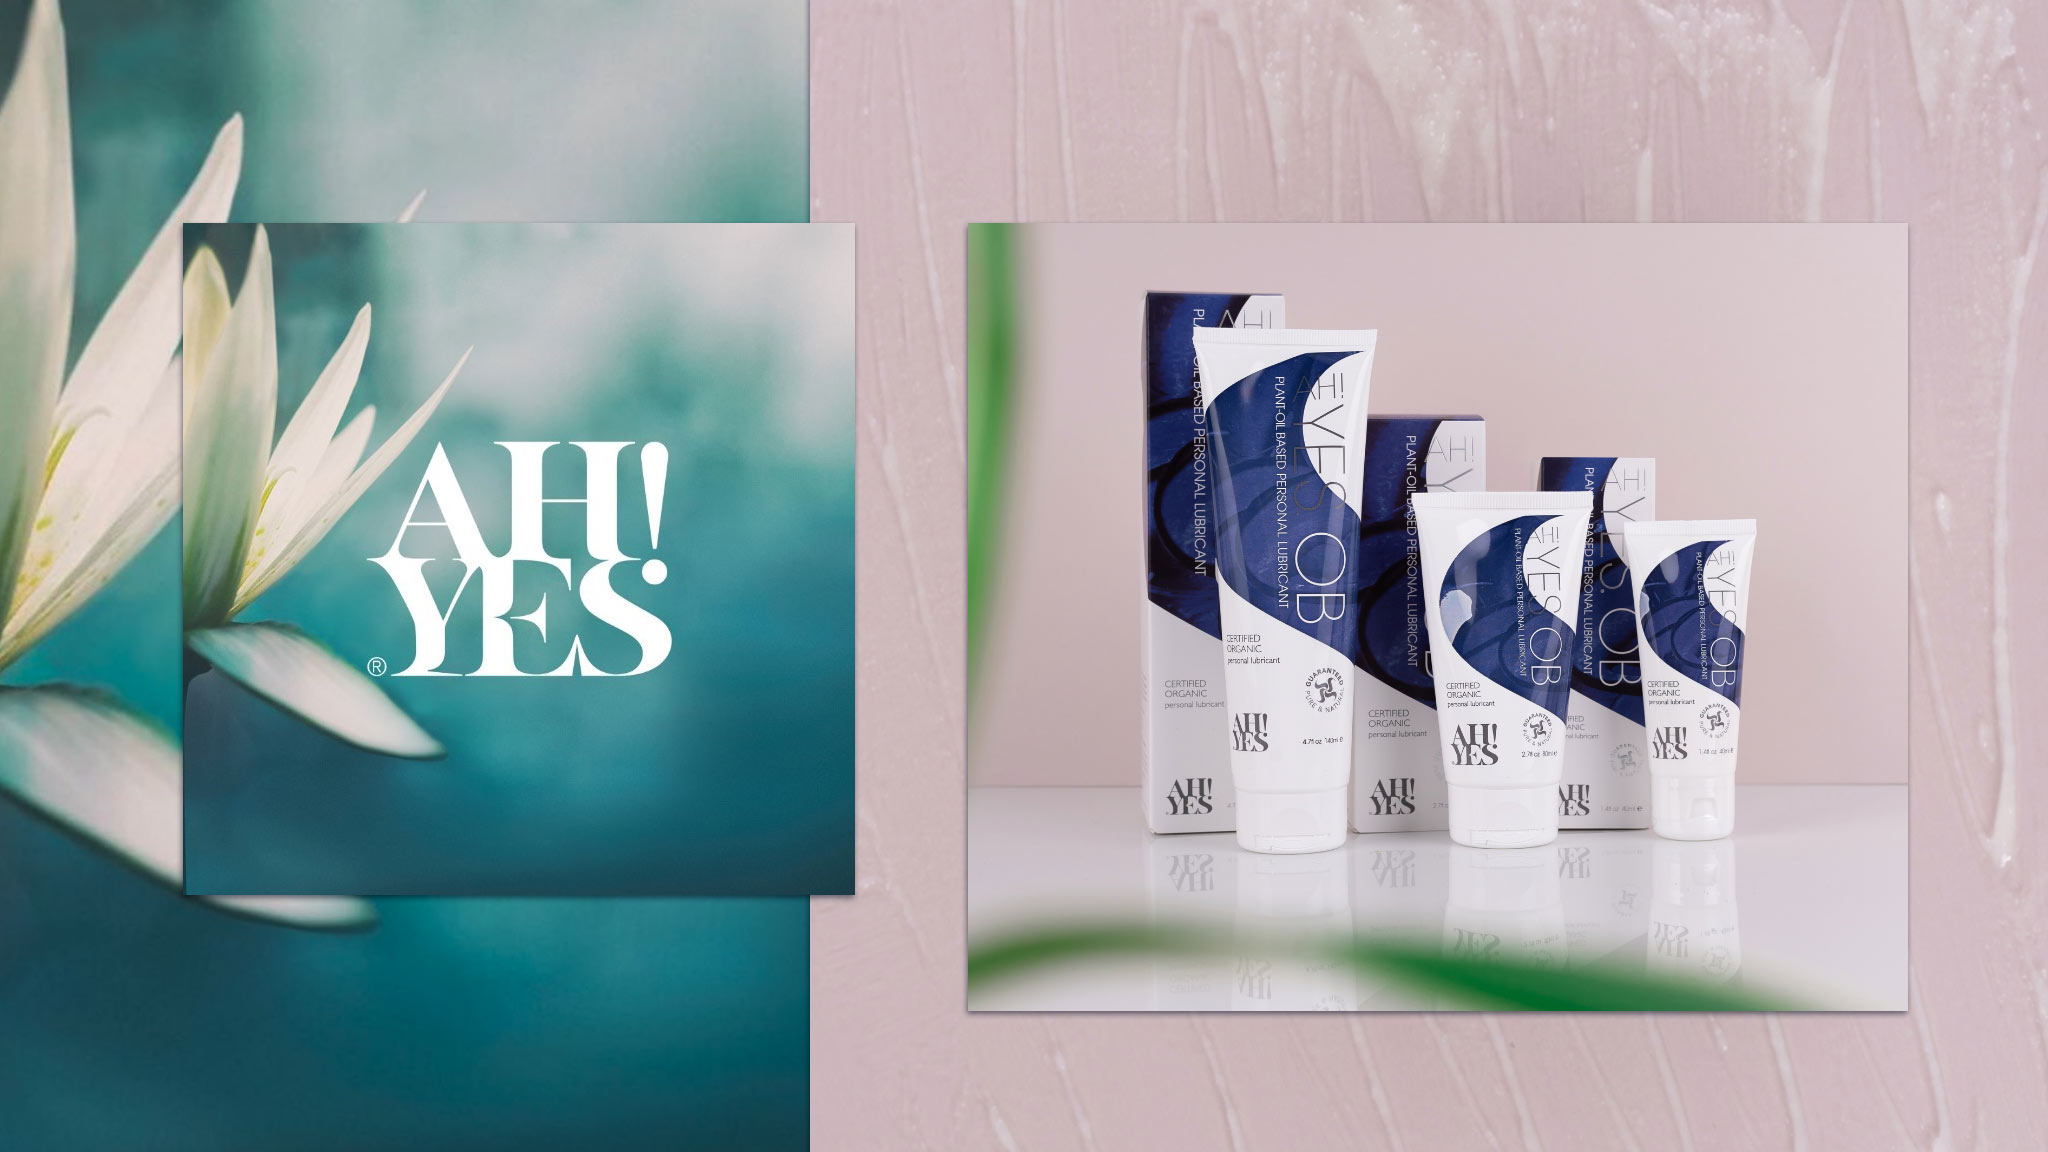 Collage Featuring Flower With AH! YES Logo And A Range Of AH! YES OB Lubricant In Varied Sizes